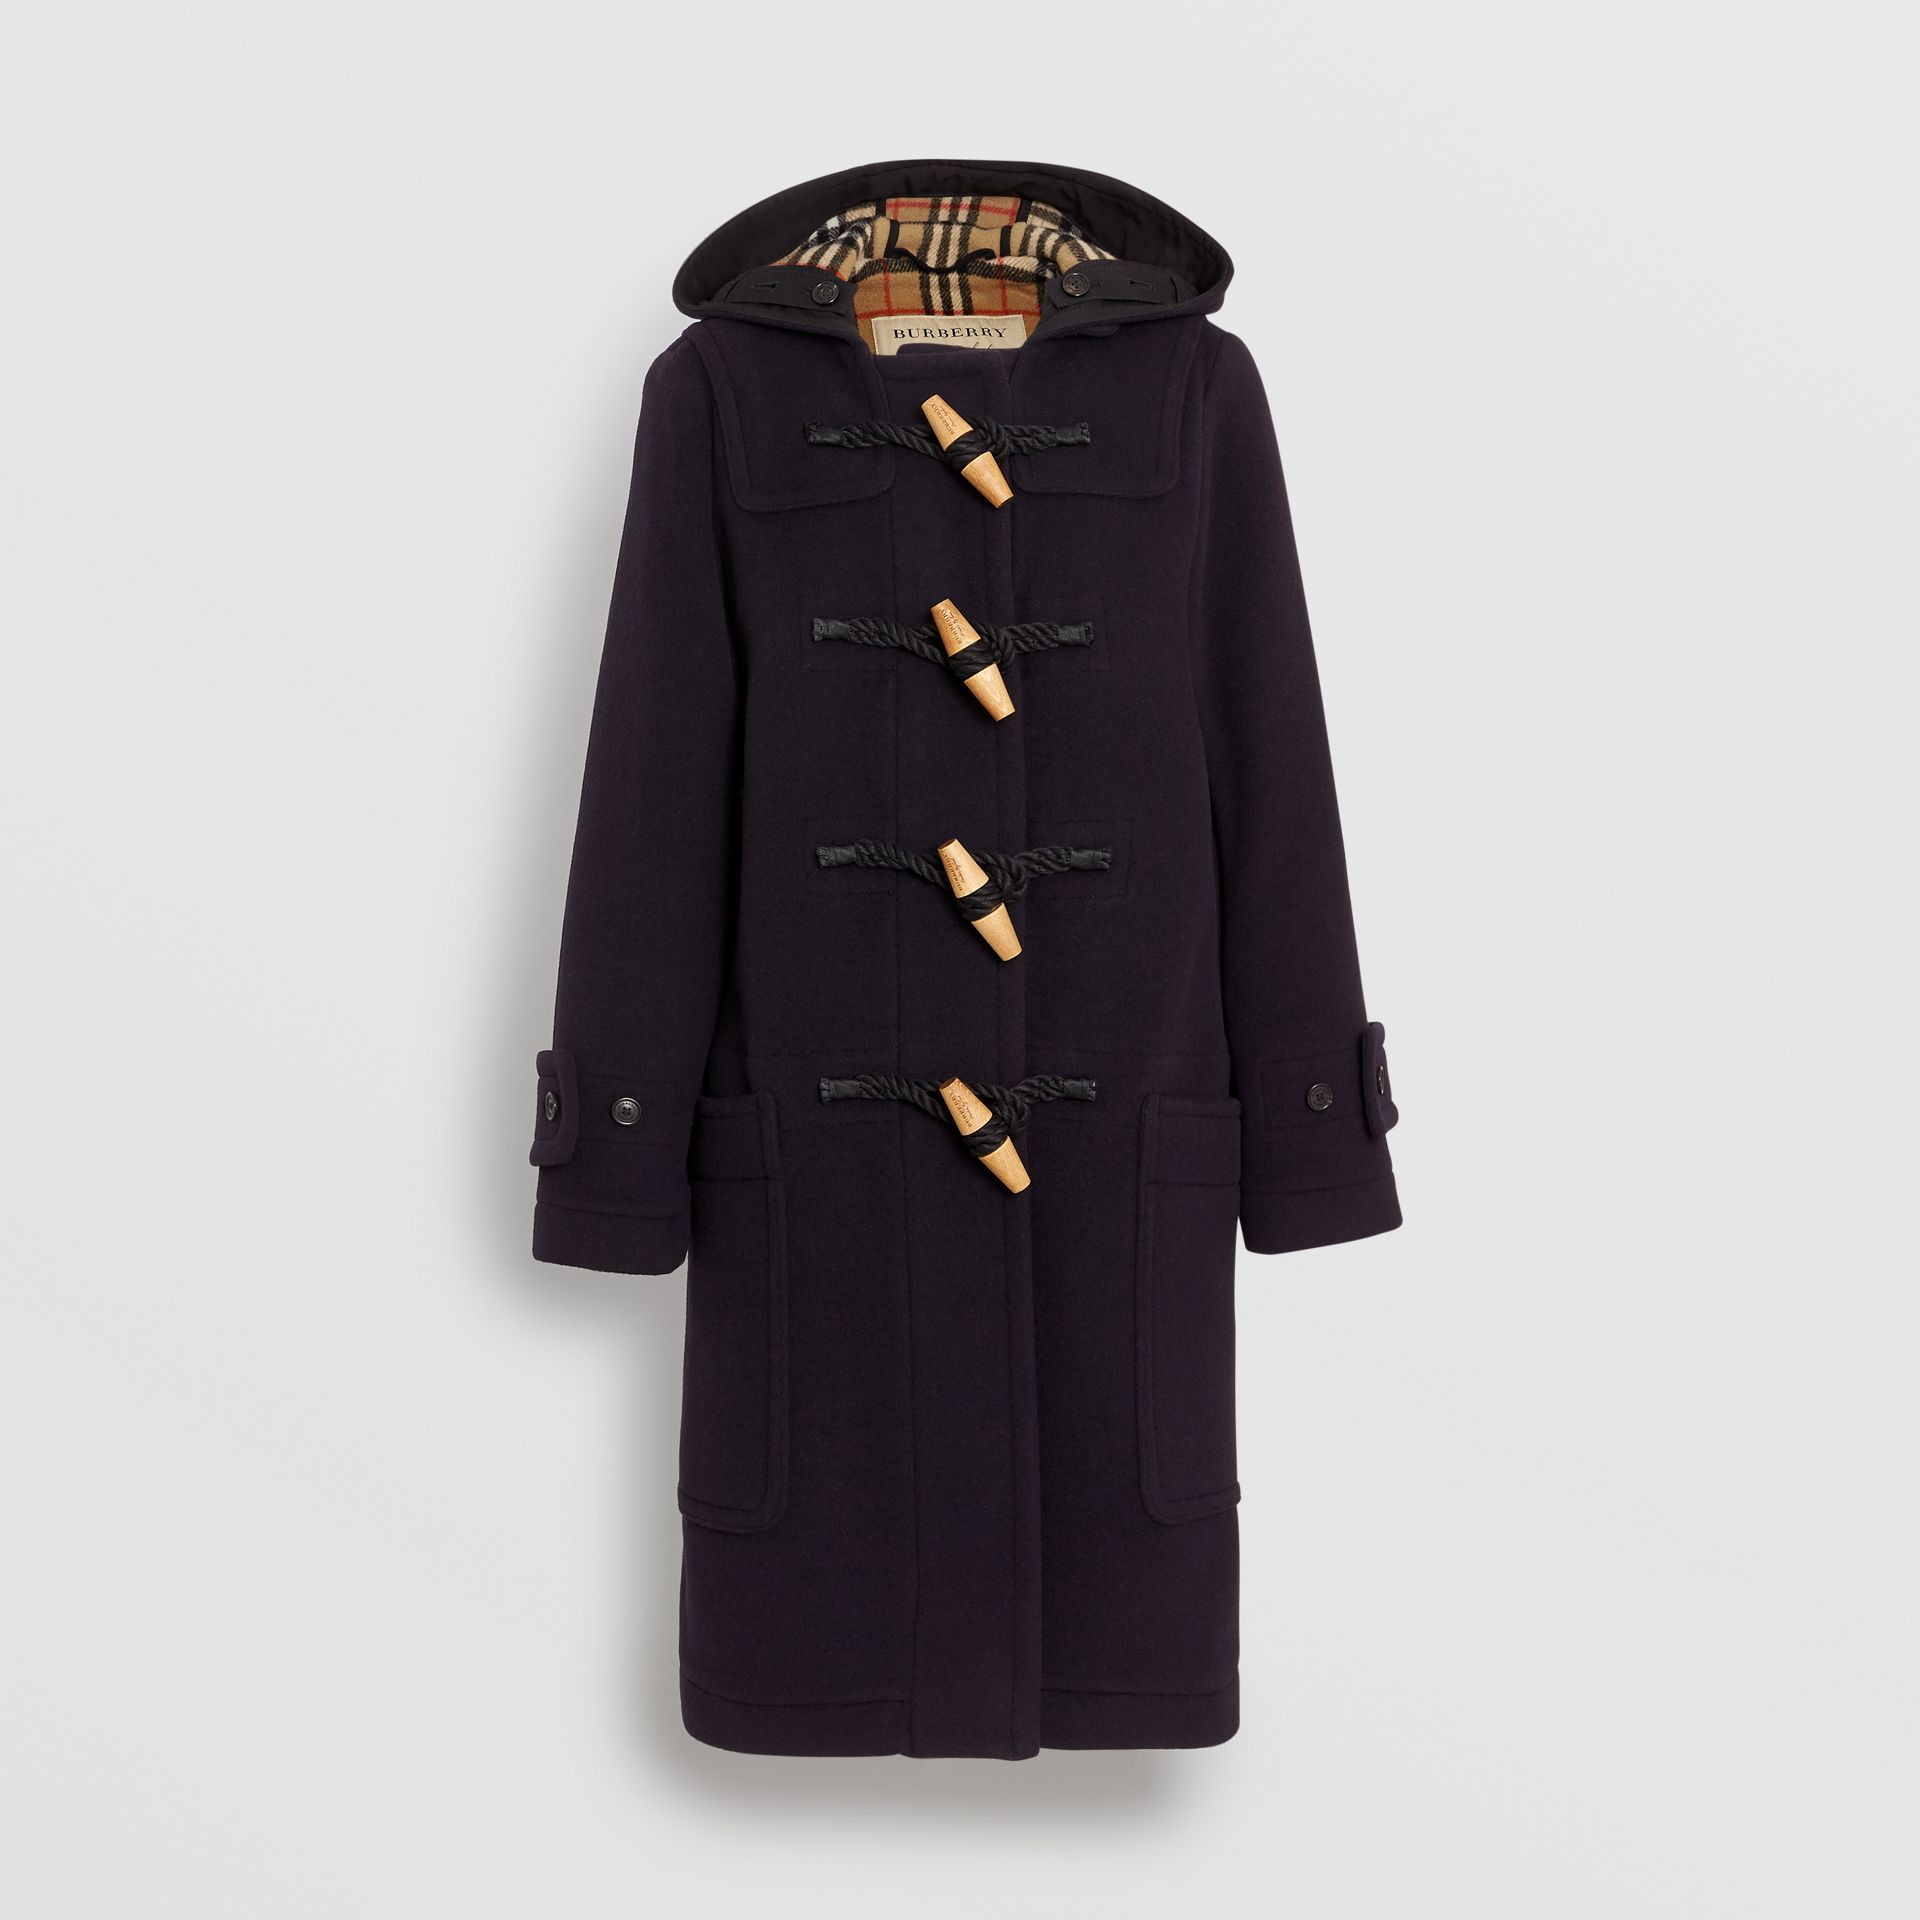 Vintage Check Detail Wool Blend Duffle Coat in Navy - Women | Burberry - gallery image 6